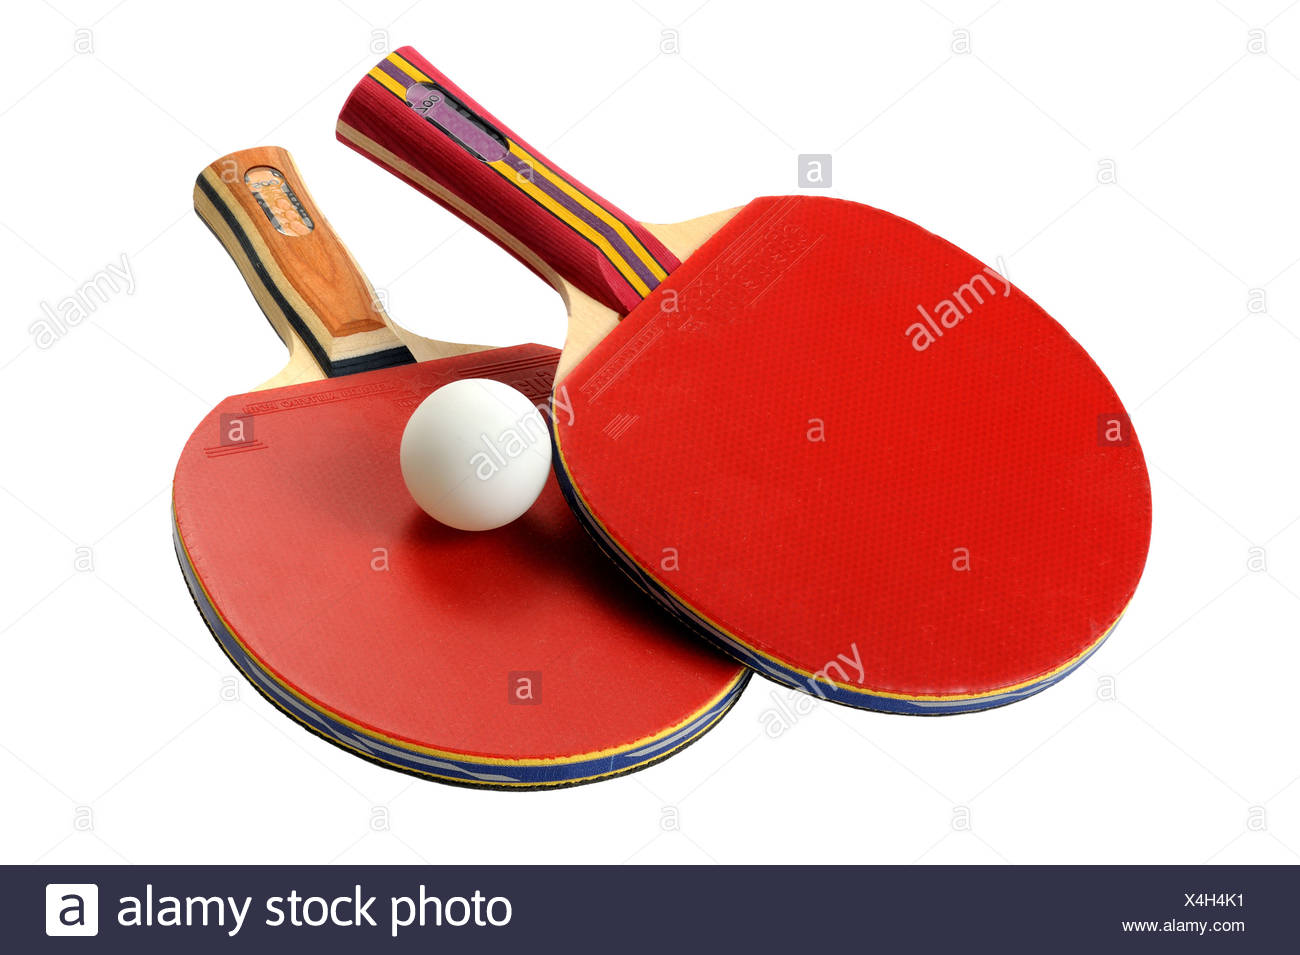 Raquettes de Tennis de Table Photo Stock